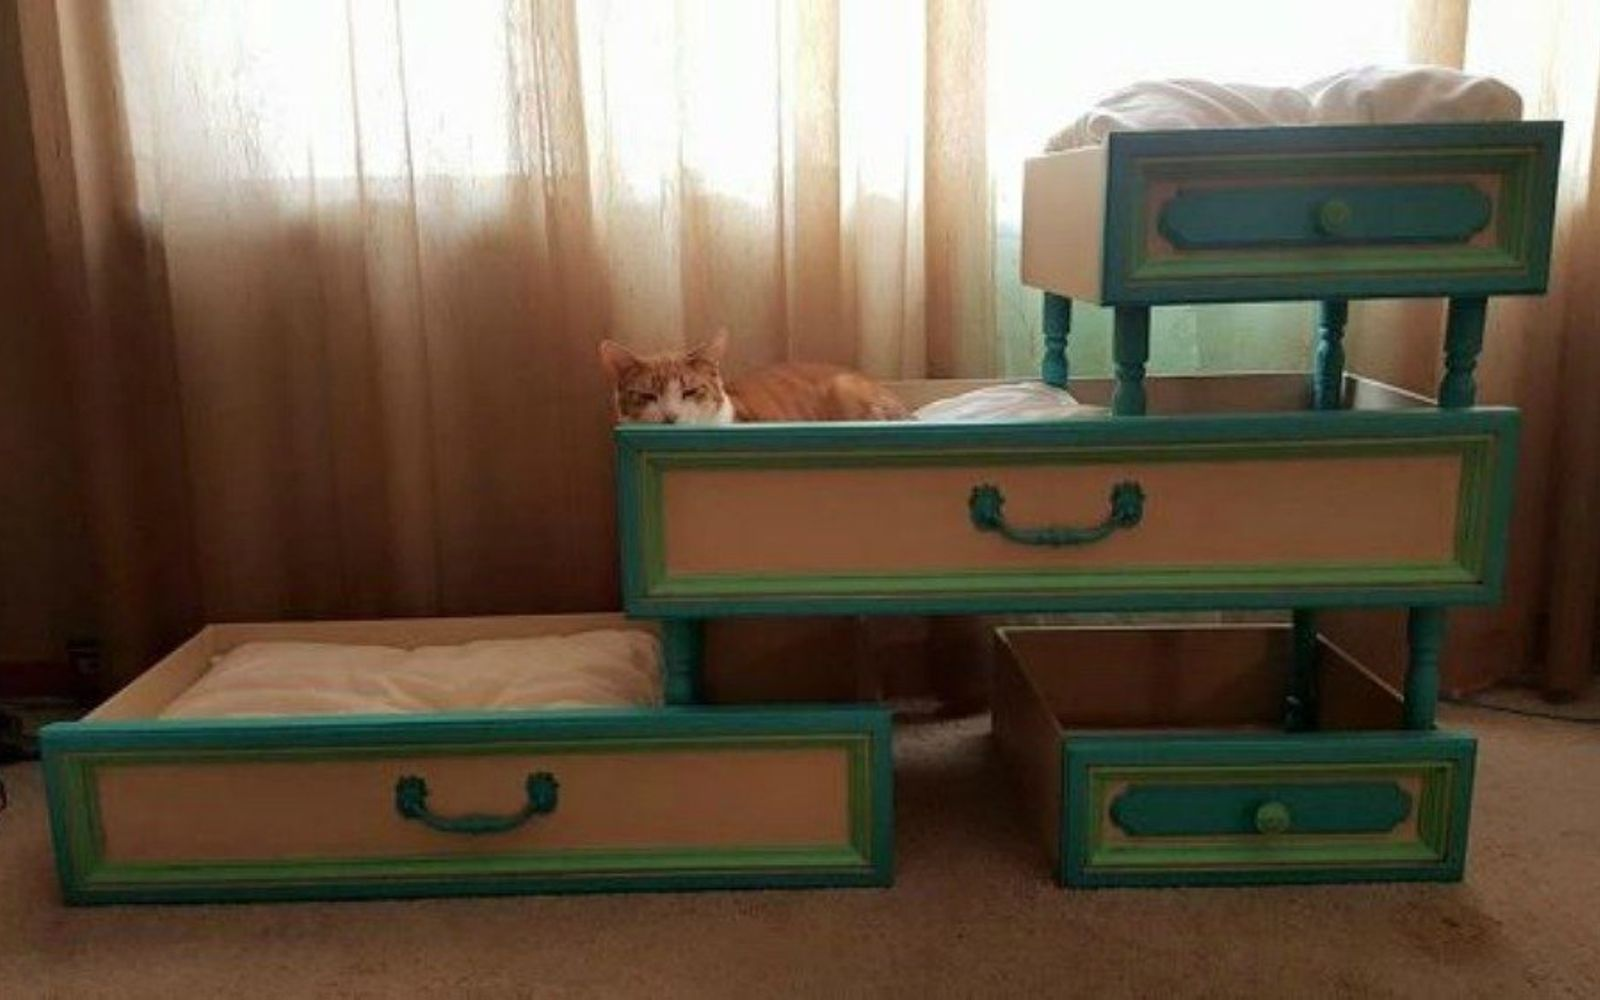 s pull drawers out of your dressers for these 12 brilliant ideas, painted furniture, Fashion them into a tiered cat bed